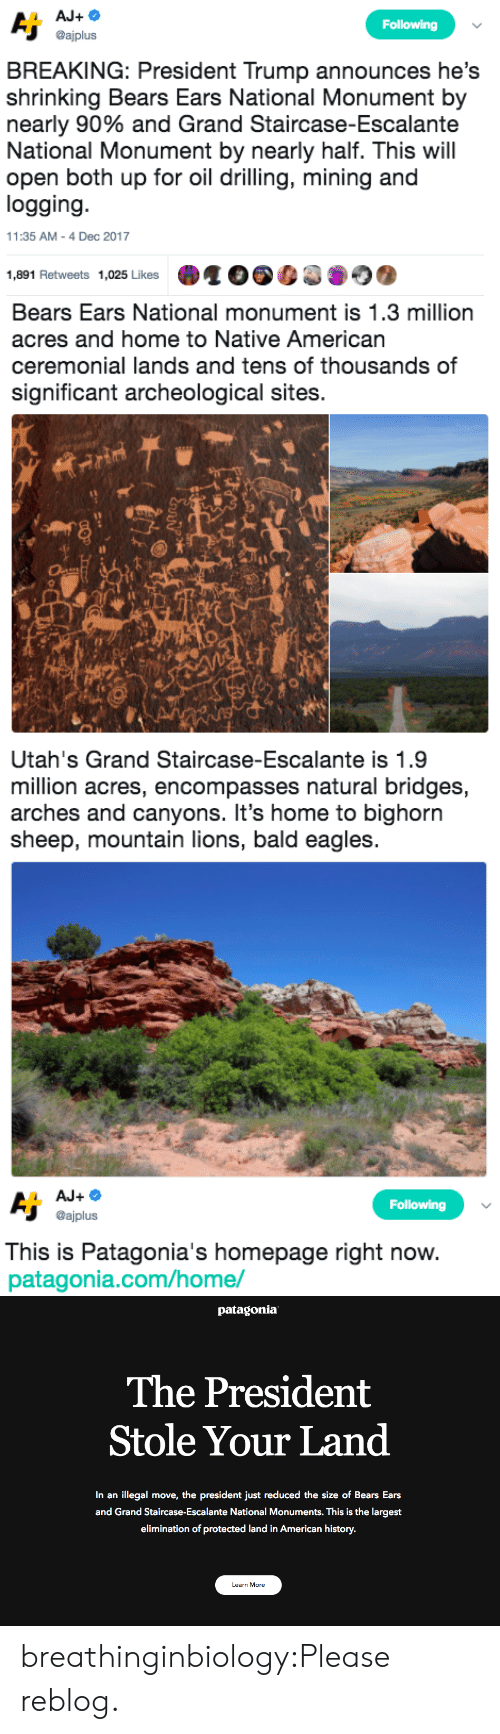 Philadelphia Eagles, Native American, and Tumblr: Following  @ajplus  BREAKING: President Trump announces he's  shrinking Bears Ears National Monument by  nearly 90% and Grand Staircase-Escalante  National Monument by nearly half. This will  open both up for oil drilling, mining and  logging  11:35 AM-4 Dec 2017  1,891 Retweets 1,025 Likes   Bears Ears National monument is 1.3 million  acres and home to Native American  ceremonial lands and tens of thousands of  significant archeological sites.  sh   Utah's Grand Staircase-Escalante is 1.9  million acres, encompasses natural bridges,  arches and canyons. It's home to bighorn  sheep, mountain lions, bald eagles   Following  @ajplus  This is Patagonia's homepage right now  patagonia.com/home/   patagonia  The President  Stole Your Land  In an illegal move, the president just reduced the size of Bears Ears  and Grand Staircase-Escalante National Monuments. This is the largest  elimination of protected land in American history.  Learn More breathinginbiology:Please reblog.